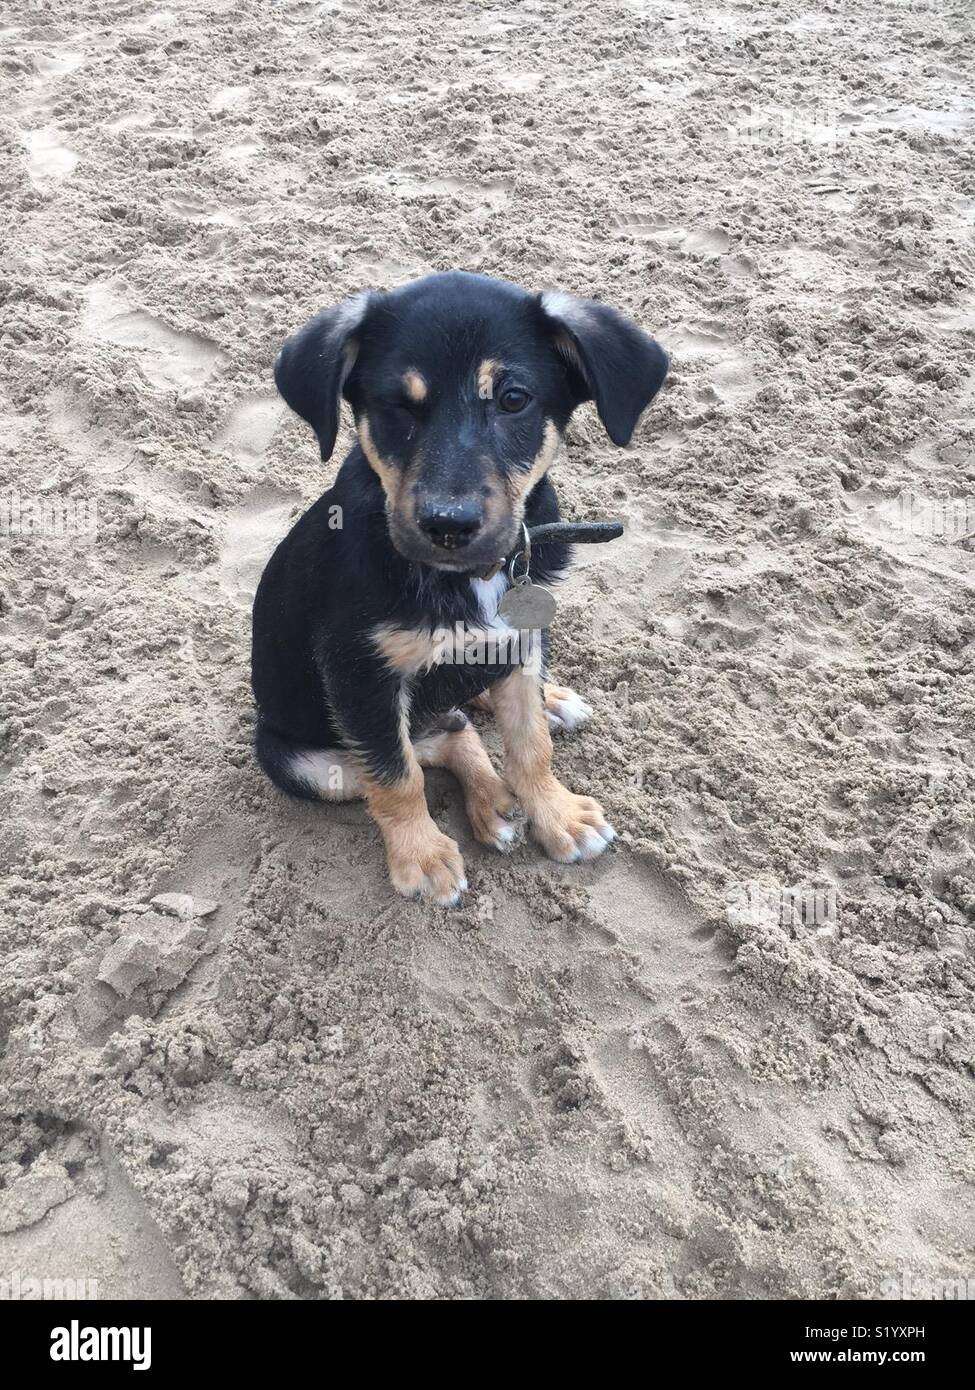 Black and Tan puppy dog winking his right eye while sitting on a beach.  And he's cute. - Stock Image